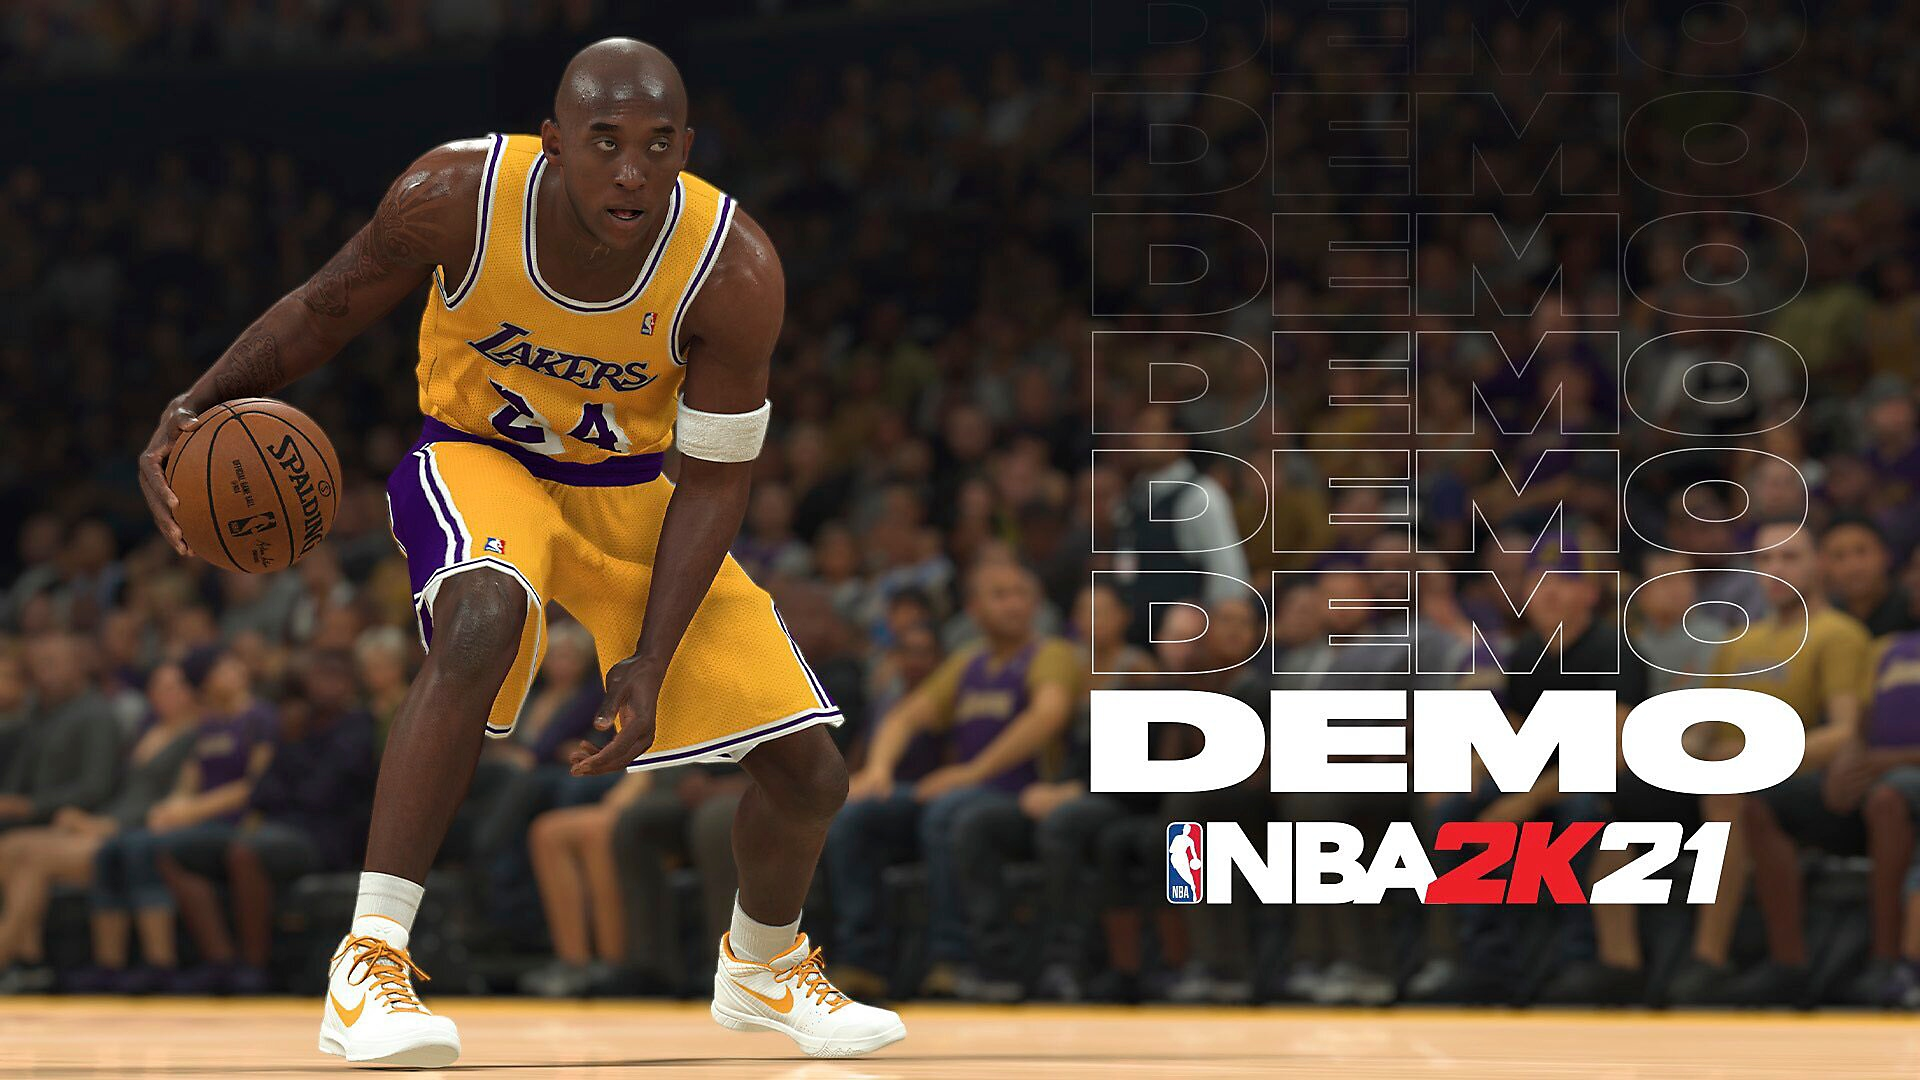 NBA 2K21 - Demo Screenshot